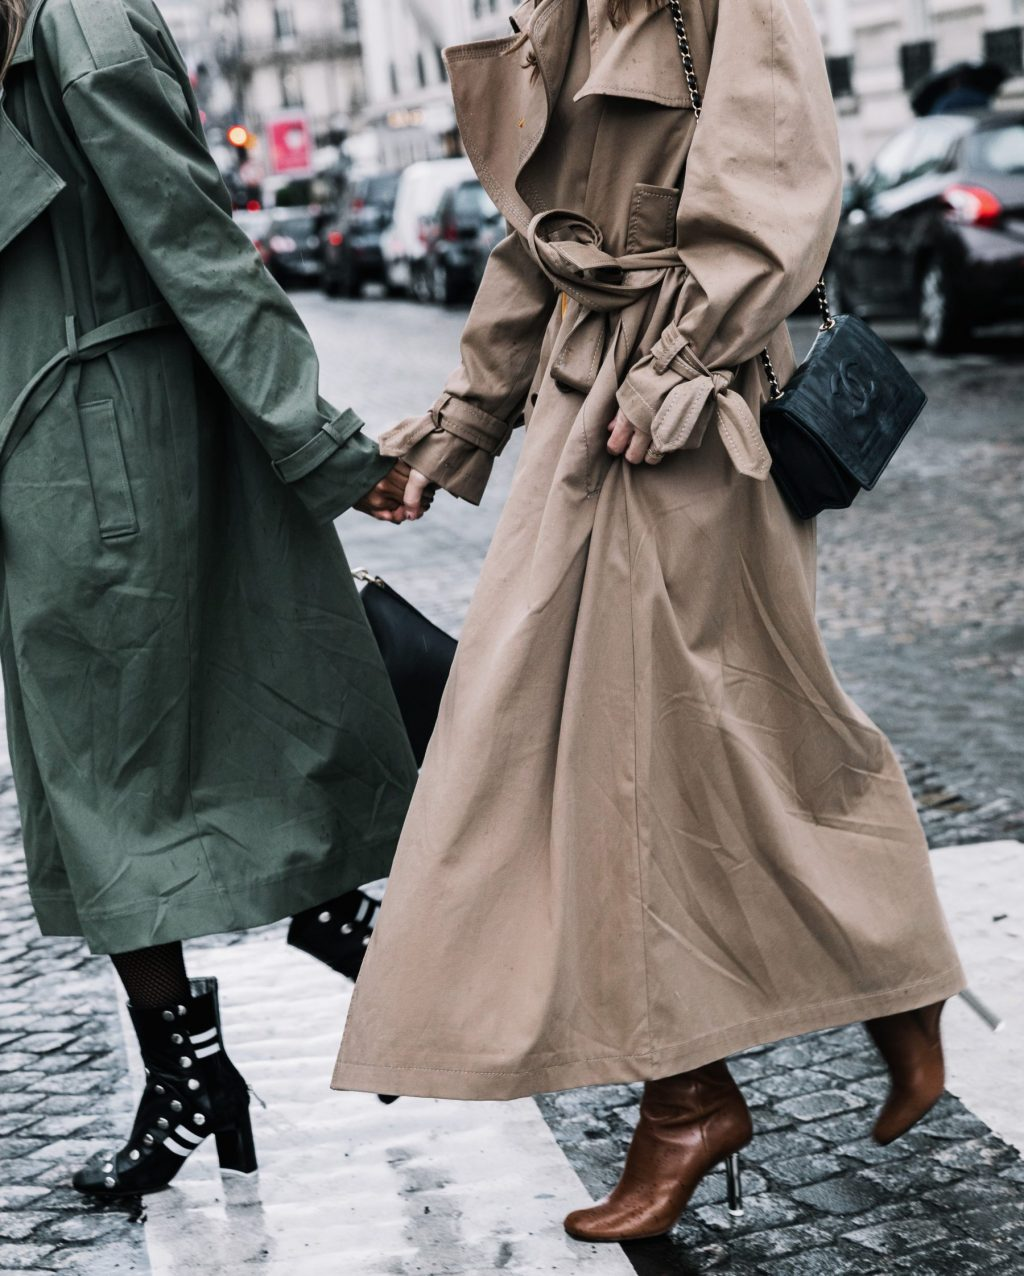 Where to Shop the Only Outerwear You'll Need to Survive a Winter in Dubai